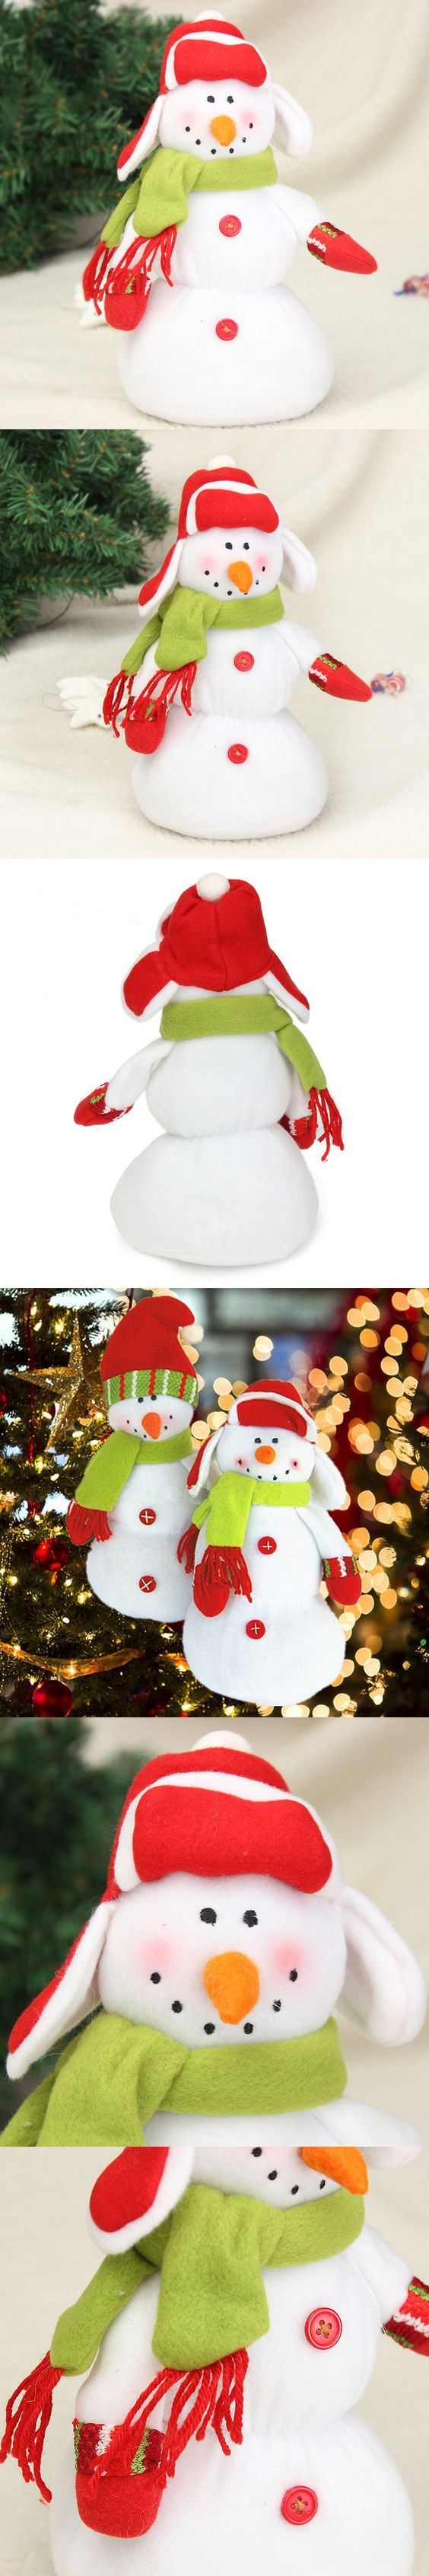 New Stylish Best Price Two Styles Christmas Snowman Doll for Xmas Patry Tree Decoration Home Shopping Mall Christmas Gift $7.43